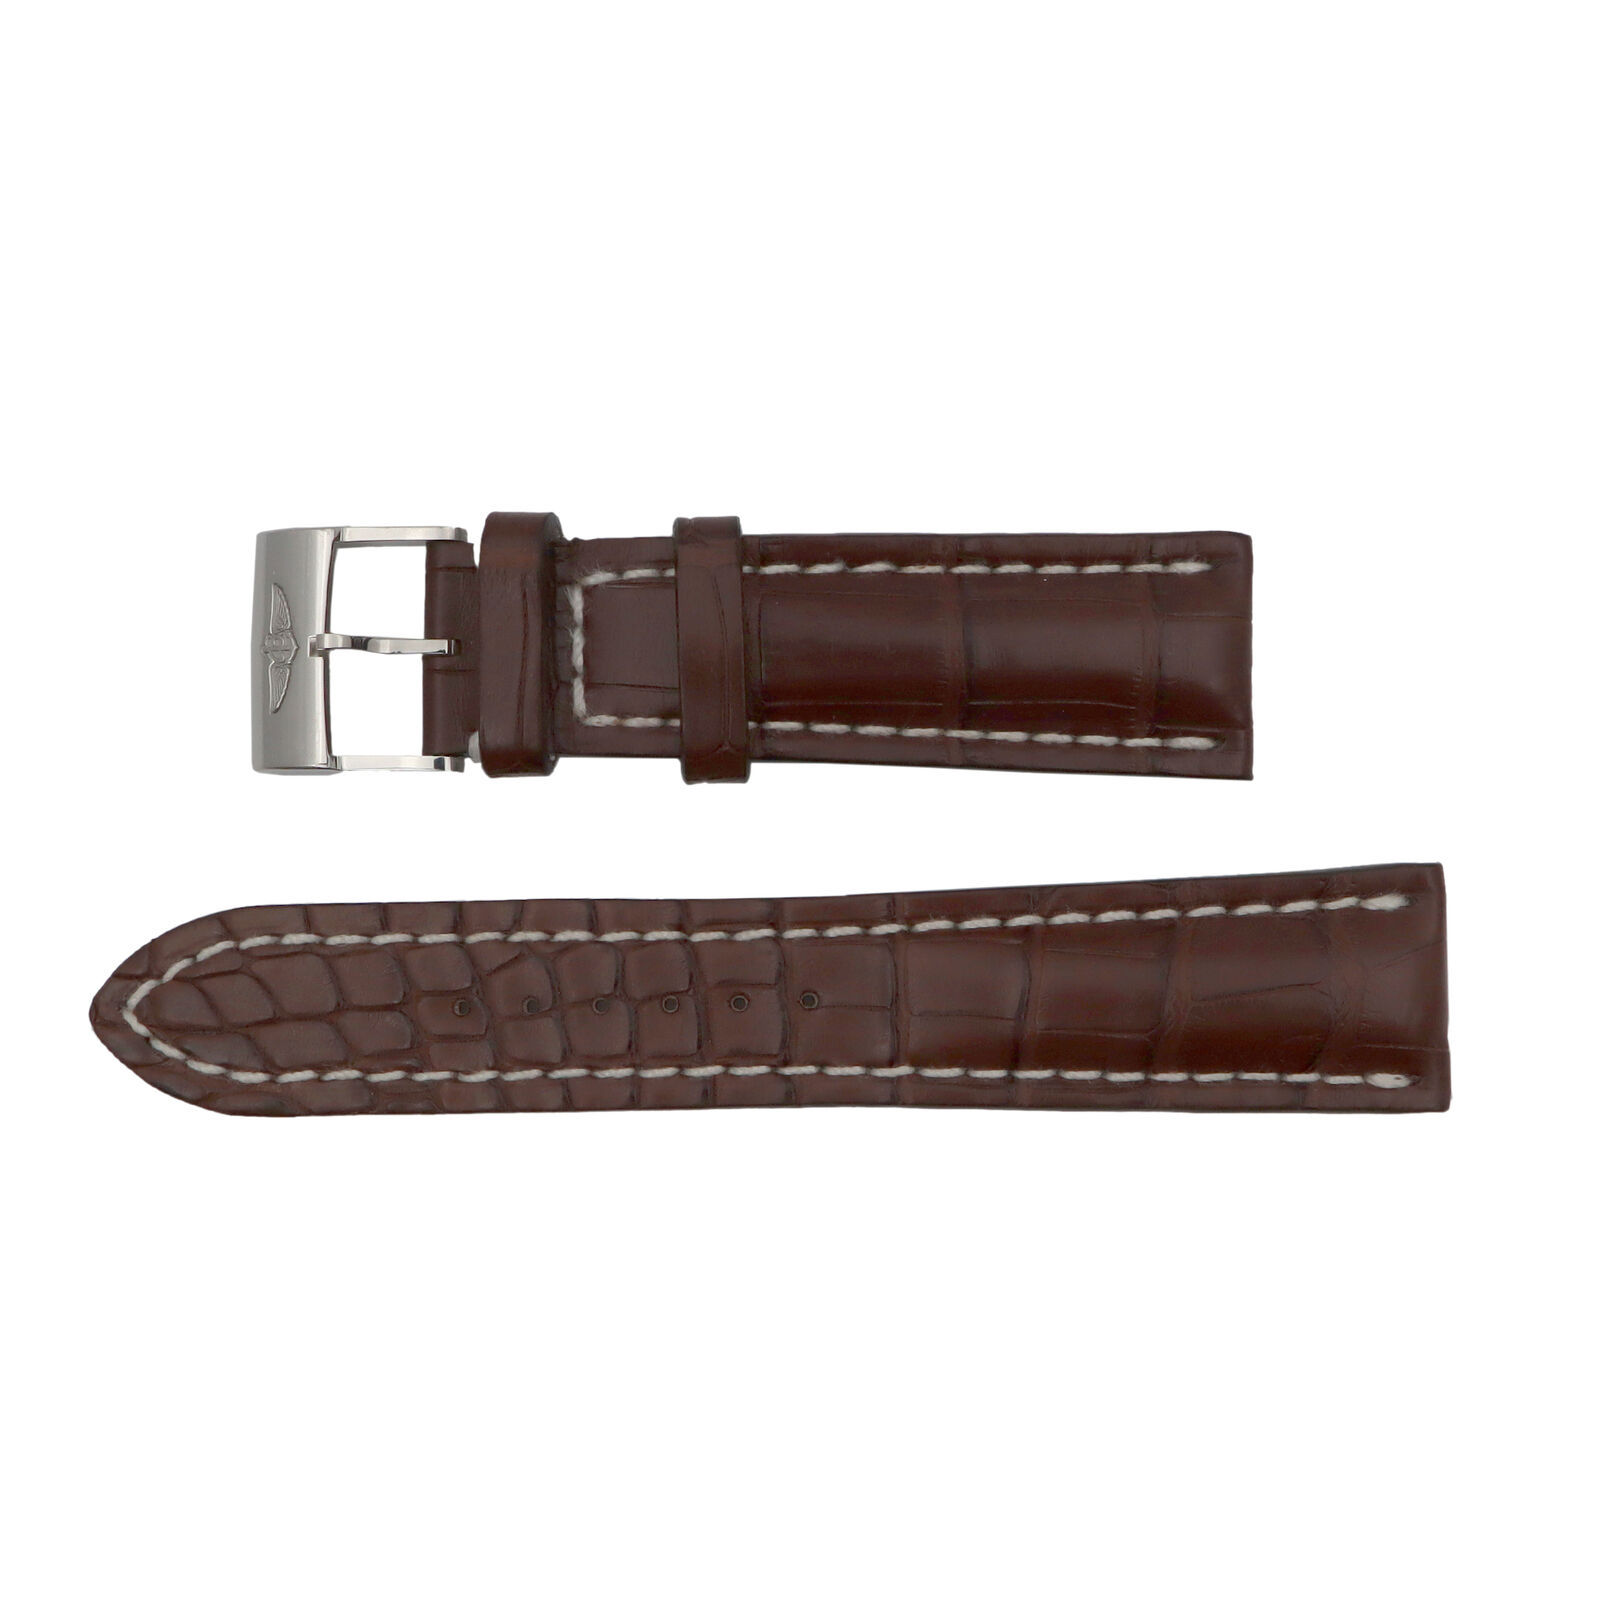 Primary image for Breitling 756P 24-20mm Alligator Leather Brown Mens Watch Band with Buckle